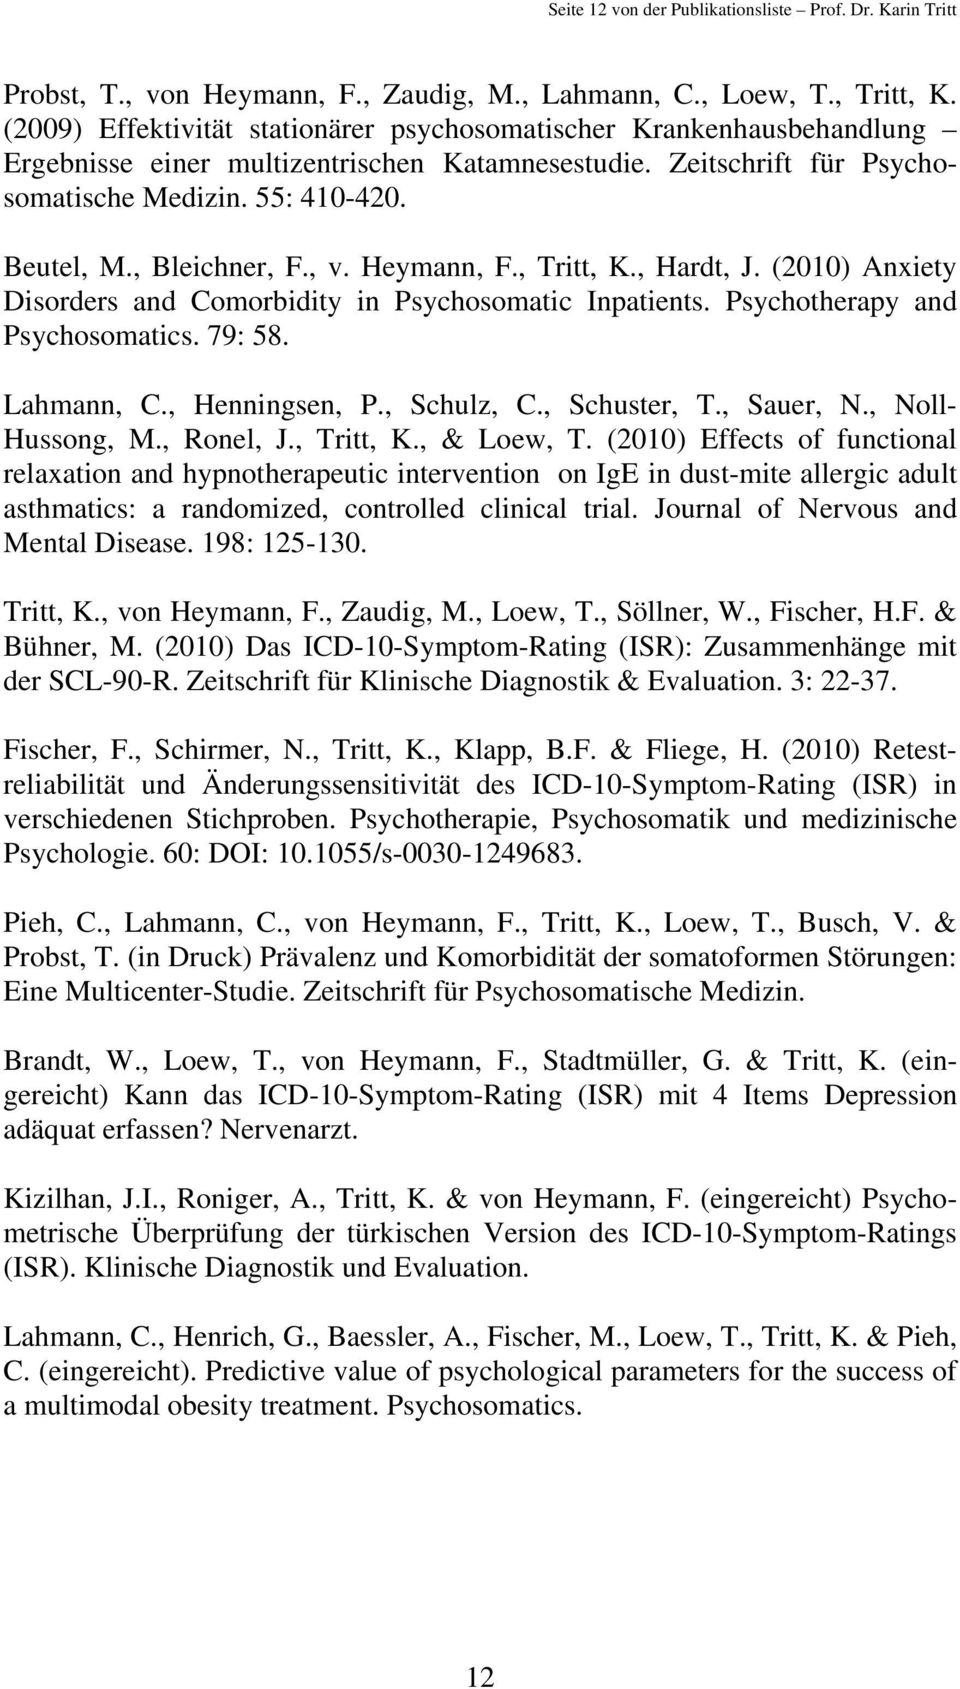 , Bleichner, F., v. Heymann, F., Tritt, K., Hardt, J. (2010) Anxiety Disorders and Comorbidity in Psychosomatic Inpatients. Psychotherapy and Psychosomatics. 79: 58. Lahmann, C., Henningsen, P.